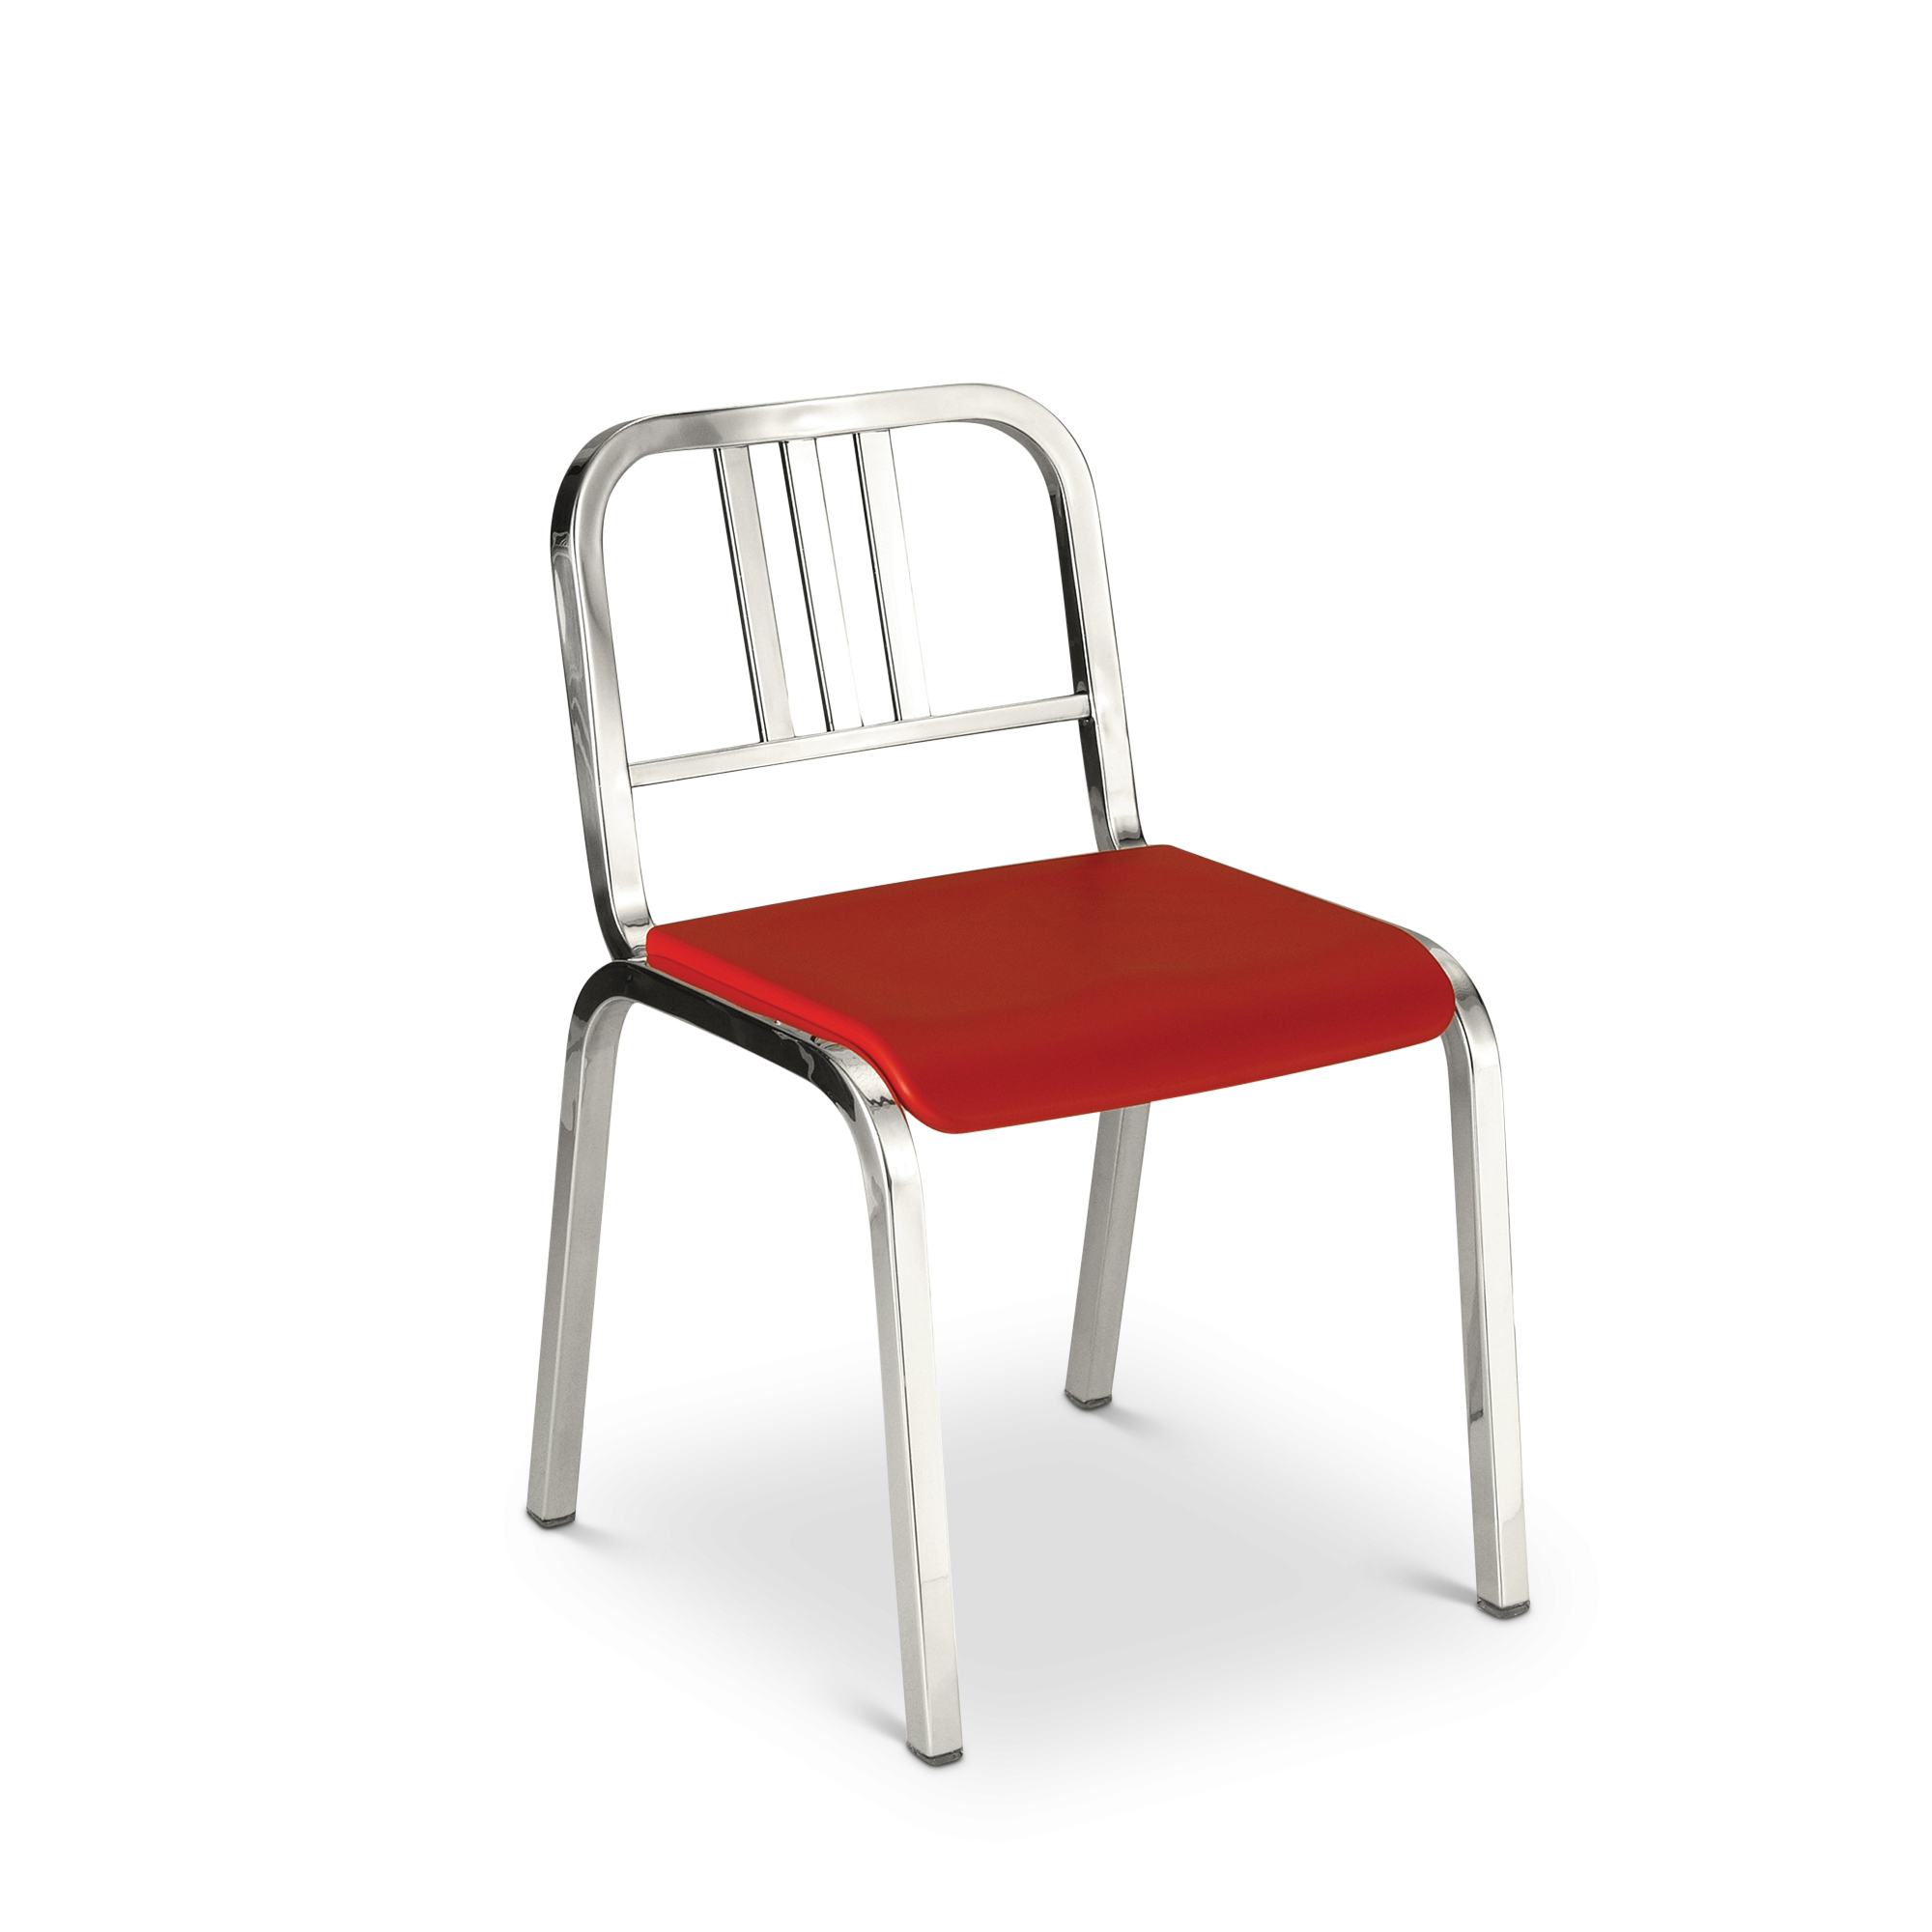 nine-0-chair-p-red